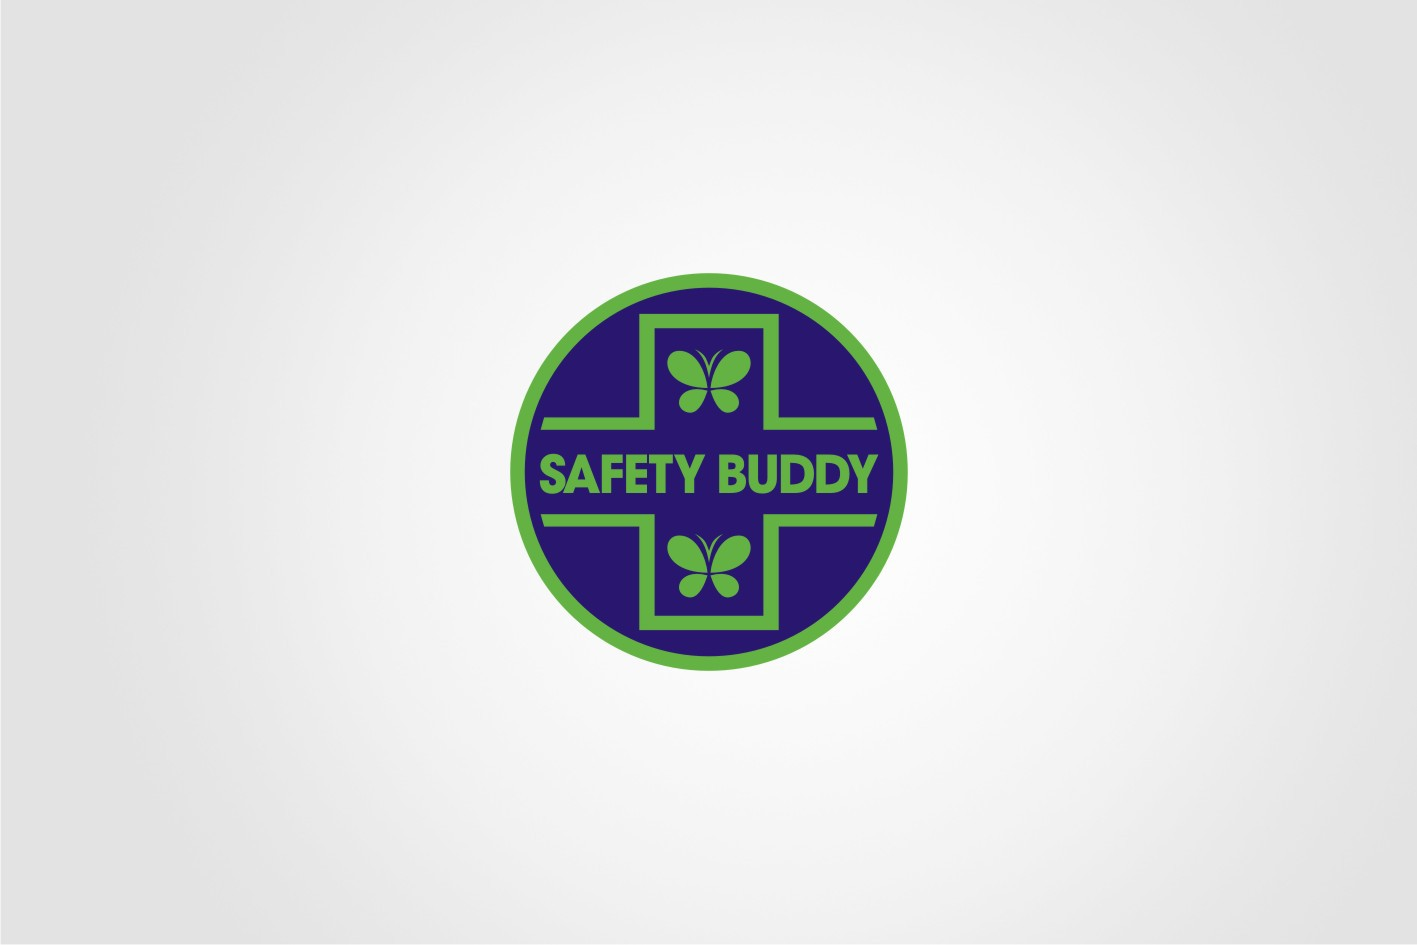 Create the next logo for Safety Buddy